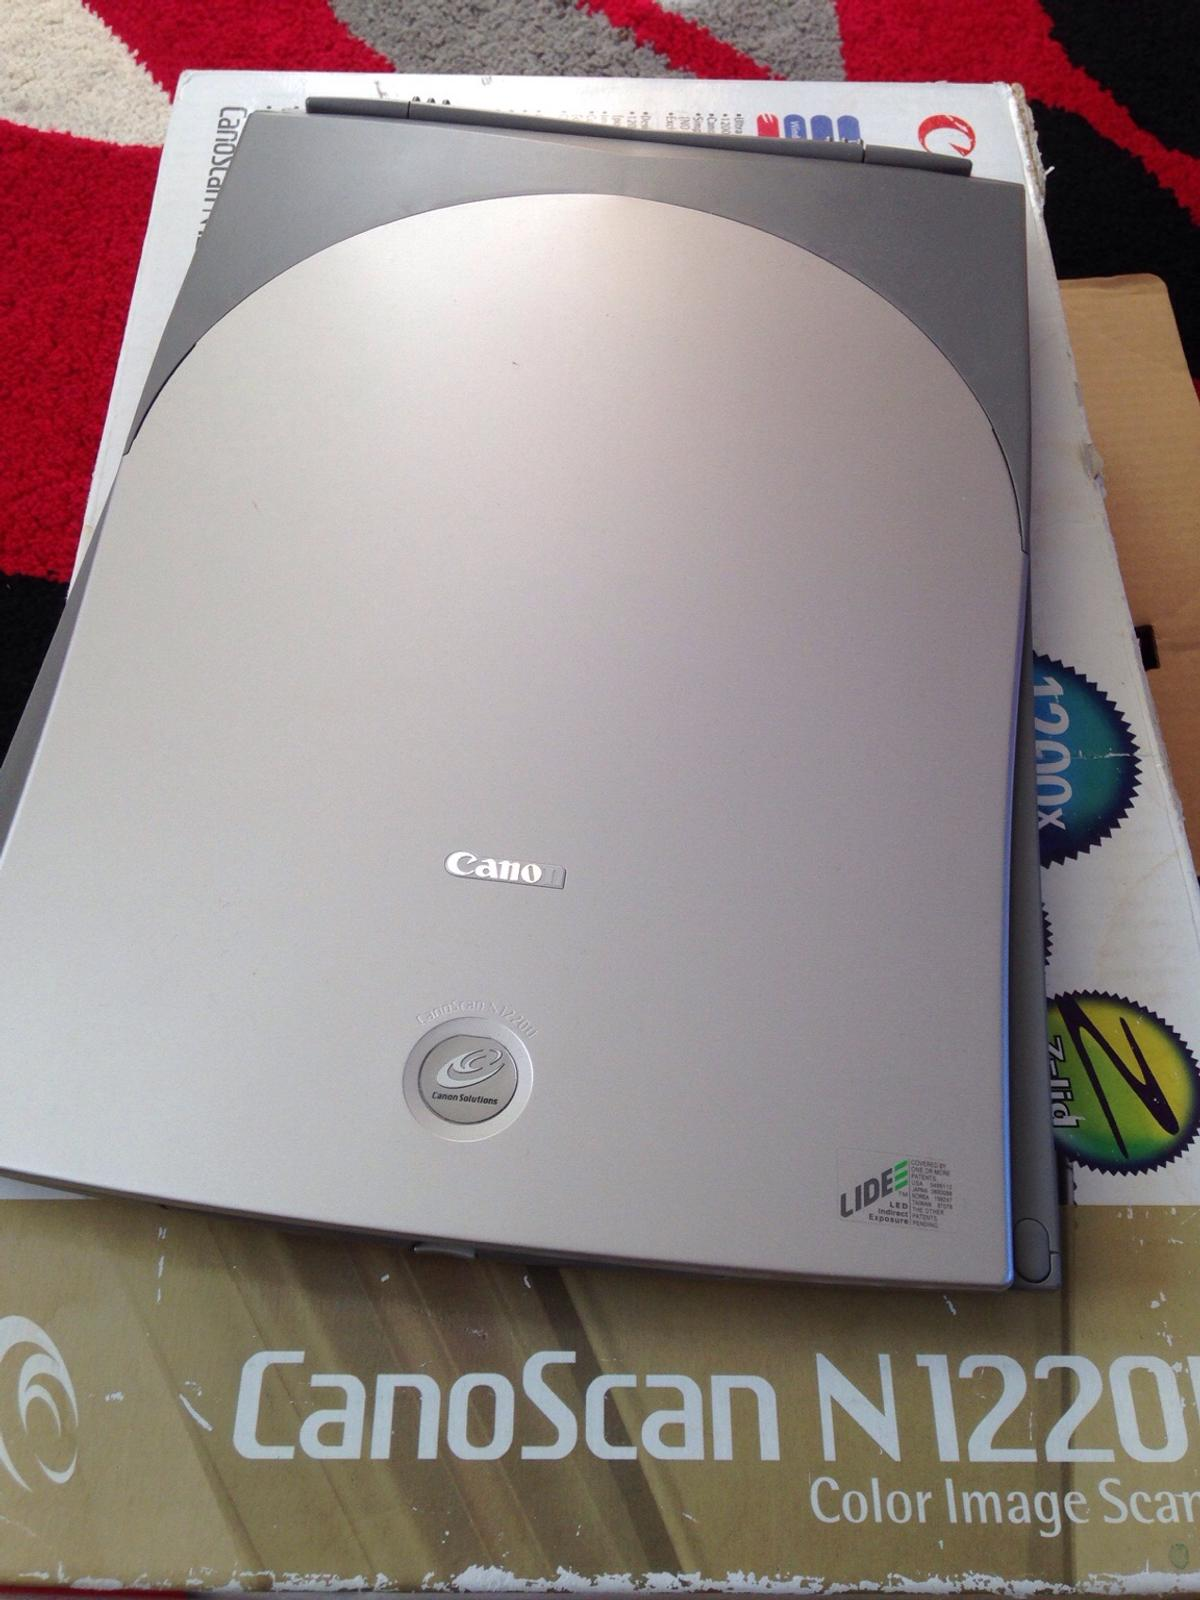 CANONSCAN 1220U DRIVERS FOR WINDOWS 7